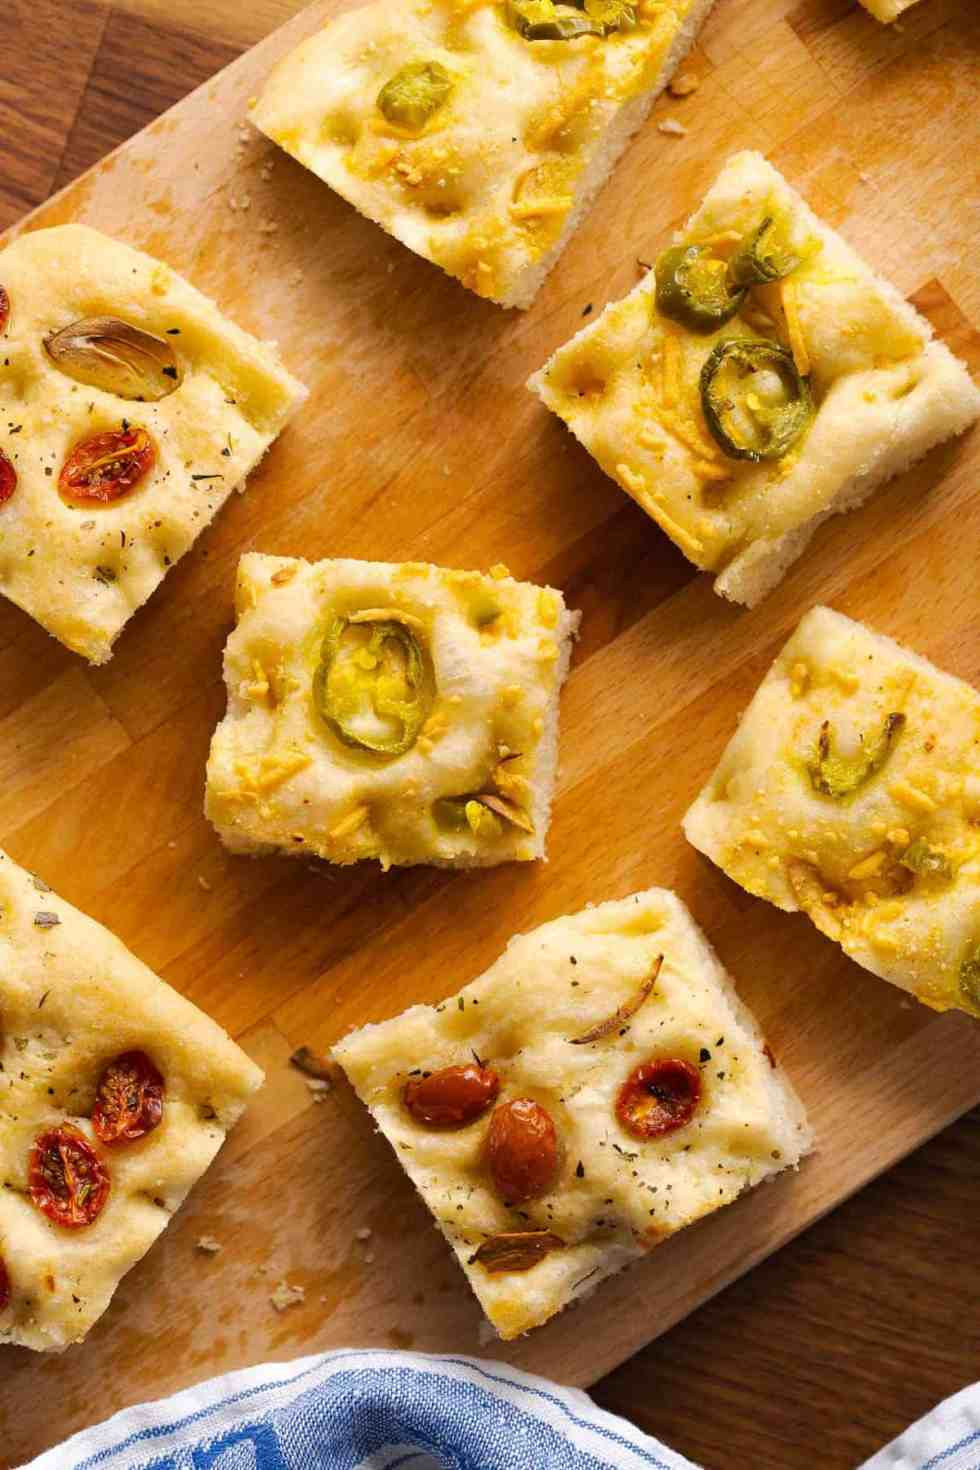 Square slices of jalapeno cheese focacccia and tomato herb focaccia on a wood cutting board.